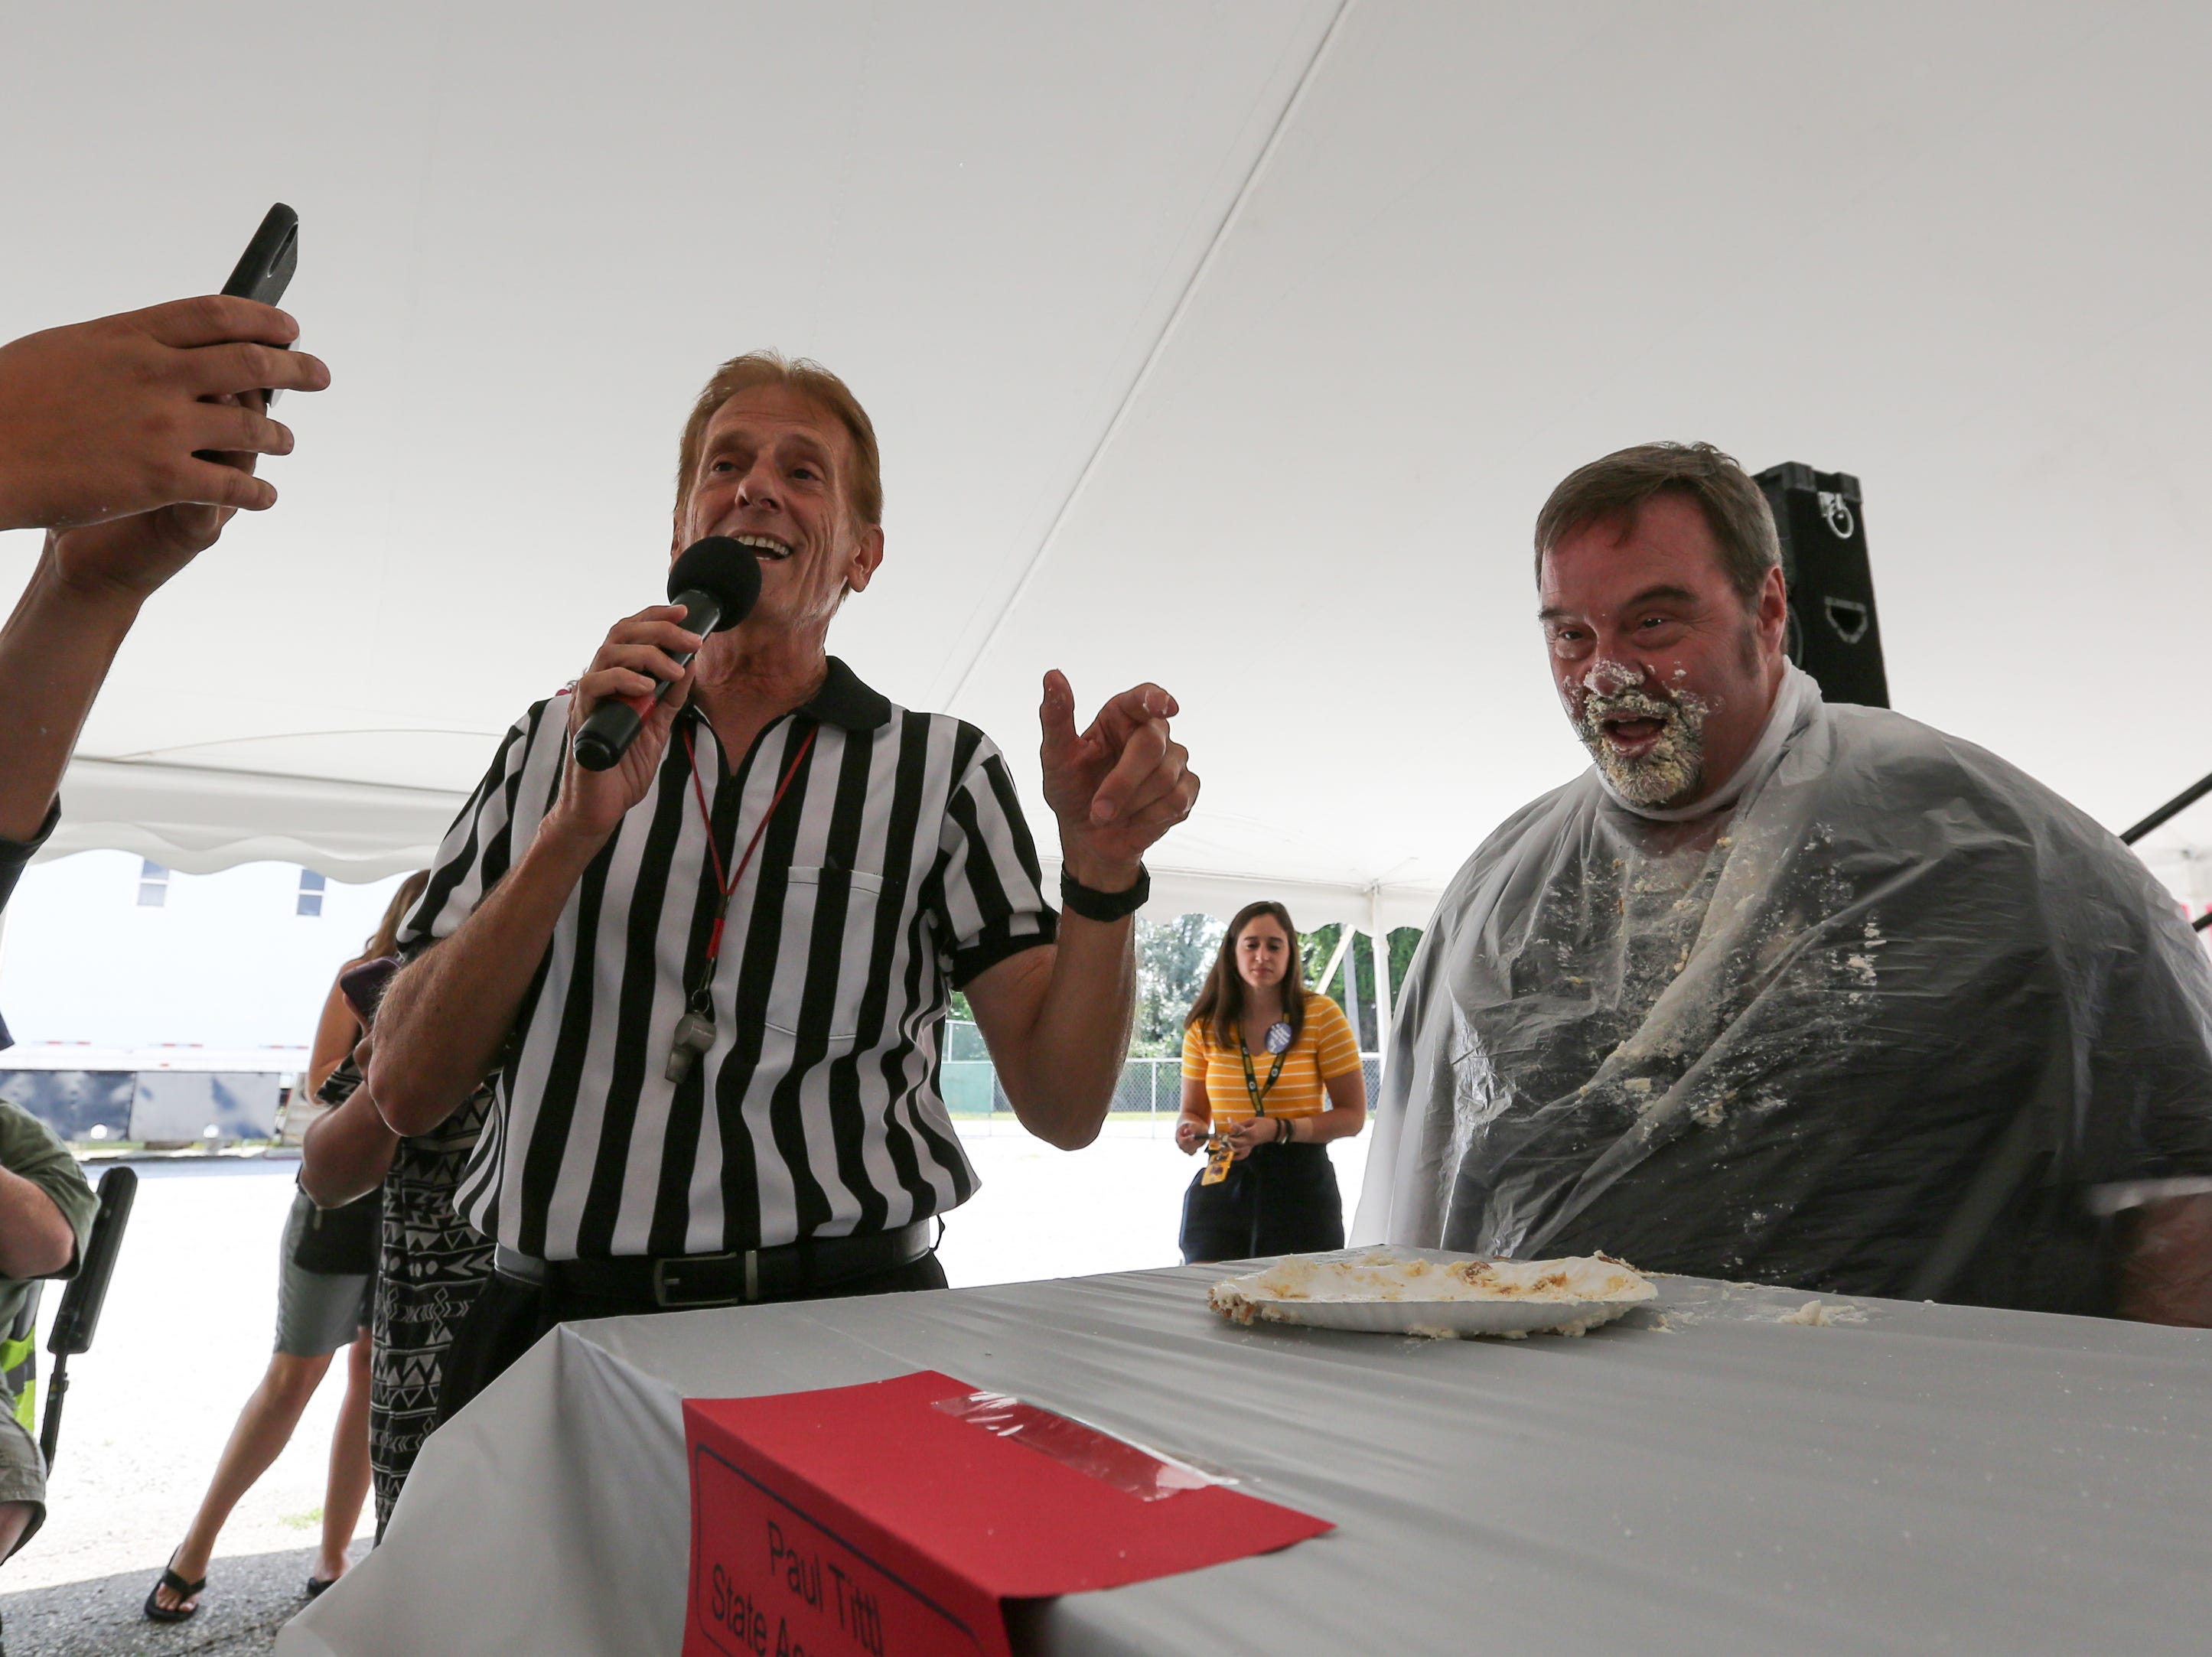 State Rep. Paul Tittl, right, wins the cream puff eating contest at the Manitowoc County Fair Thursday, August 23, 2018, in Manitowoc, Wis. Josh Clark/USA TODAY NETWORK-Wisconsin